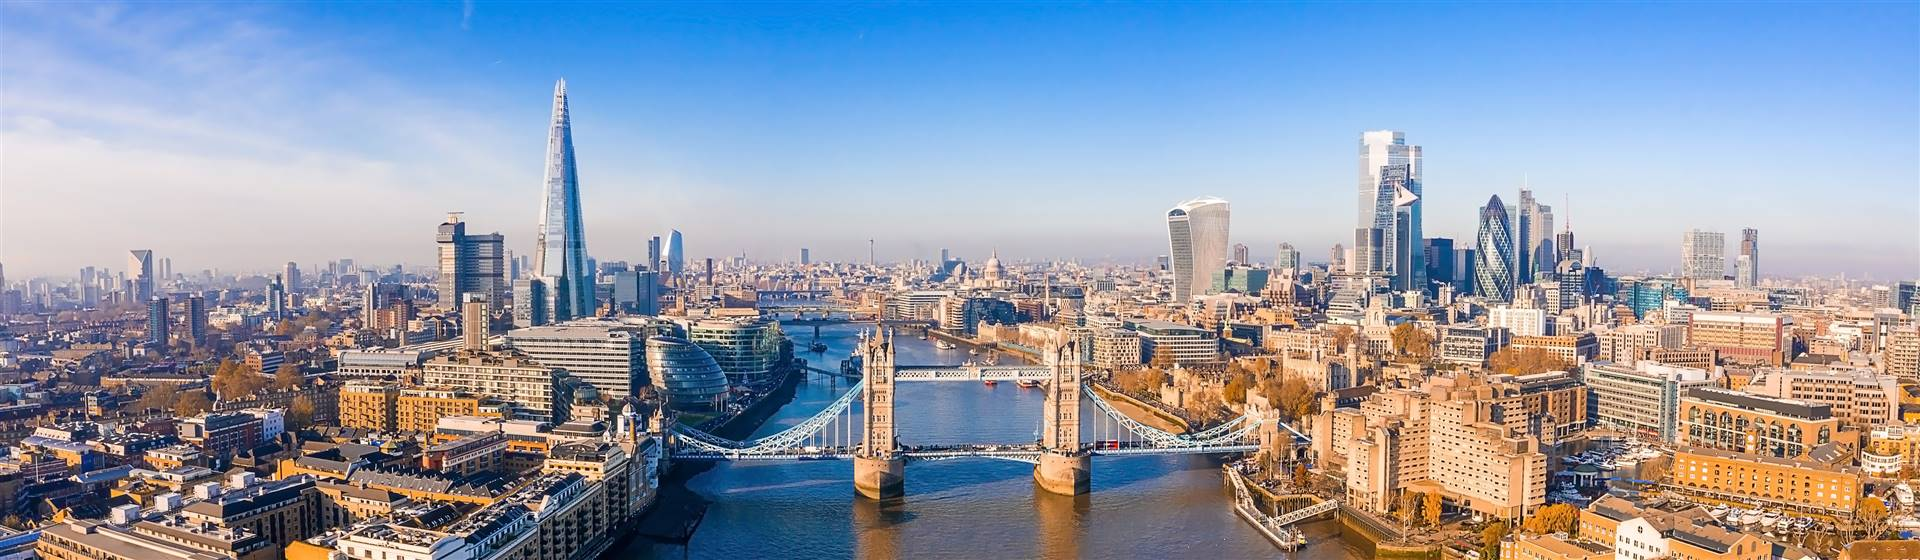 Panorama of Tower Bridge and The Shard in London